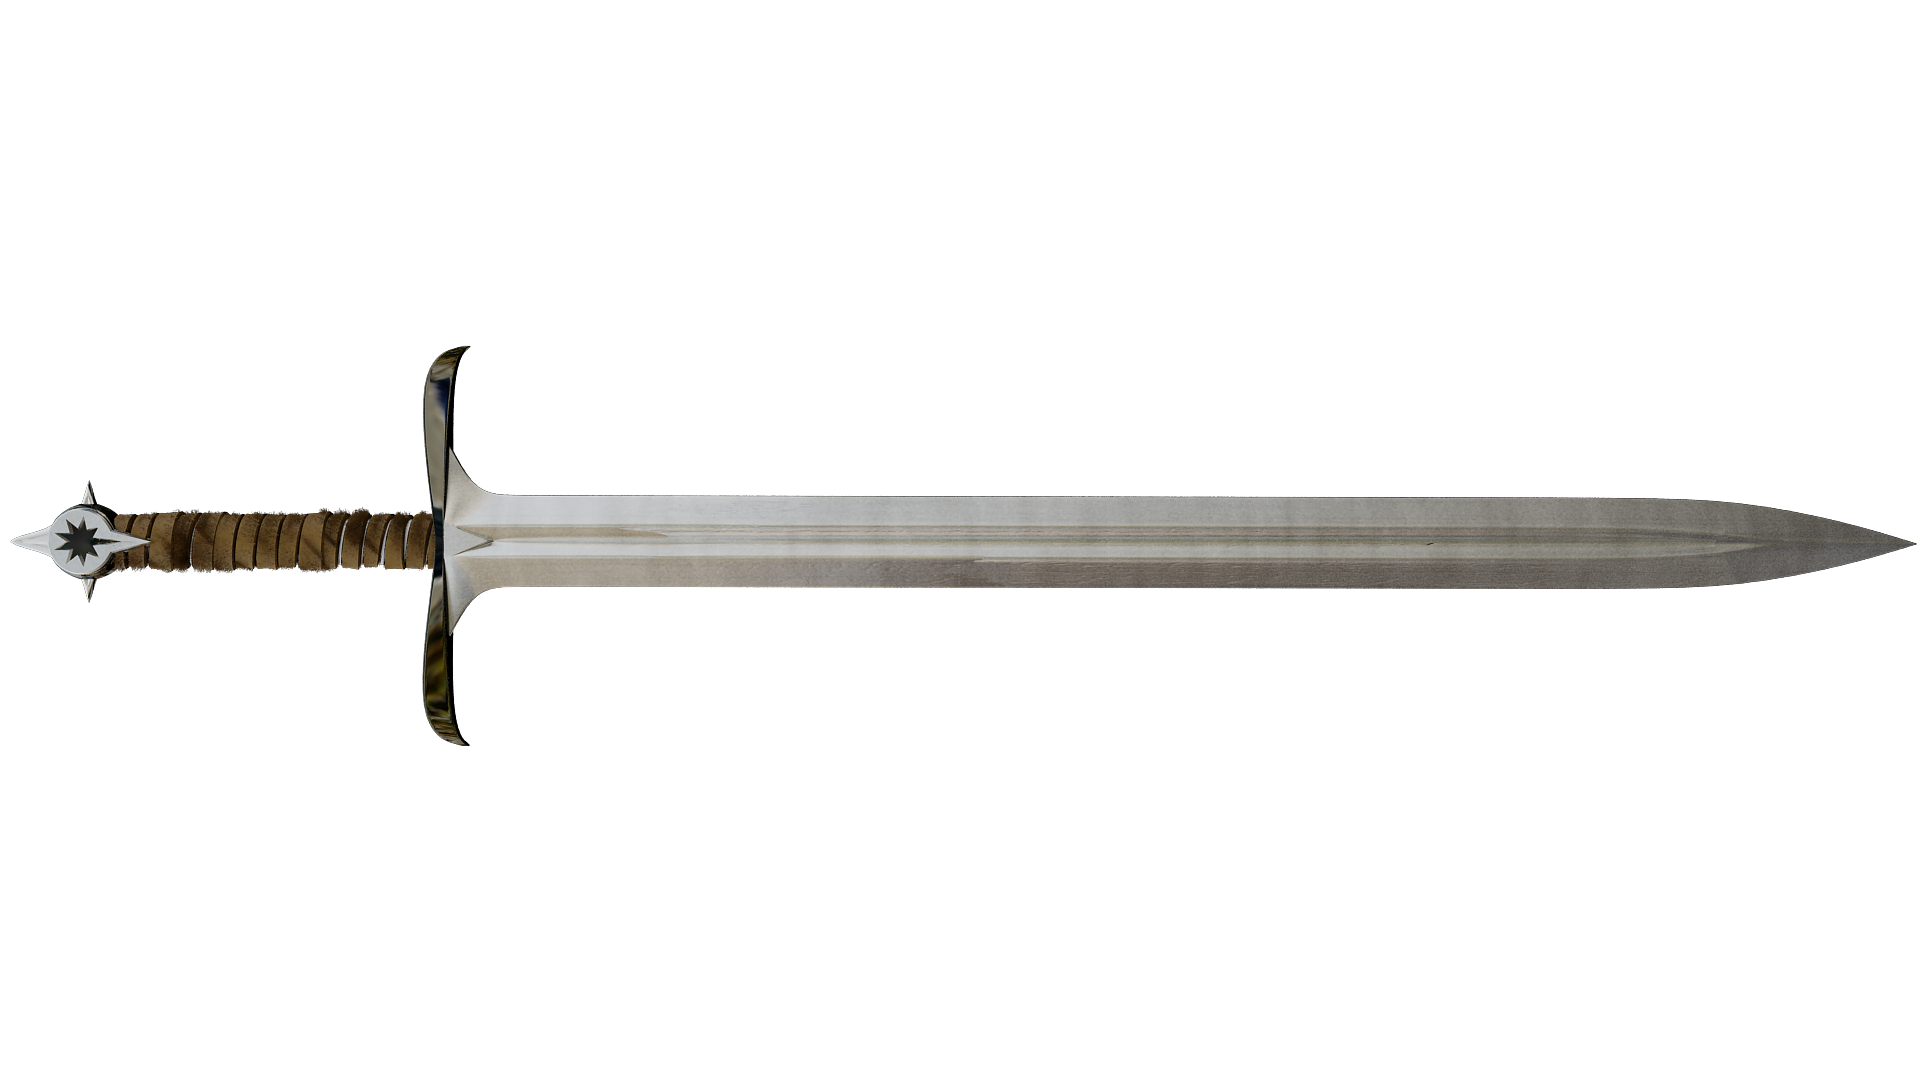 Invitation à la neuvième édition de l'Interforum Sword-hd-png-sword-png-image-1920